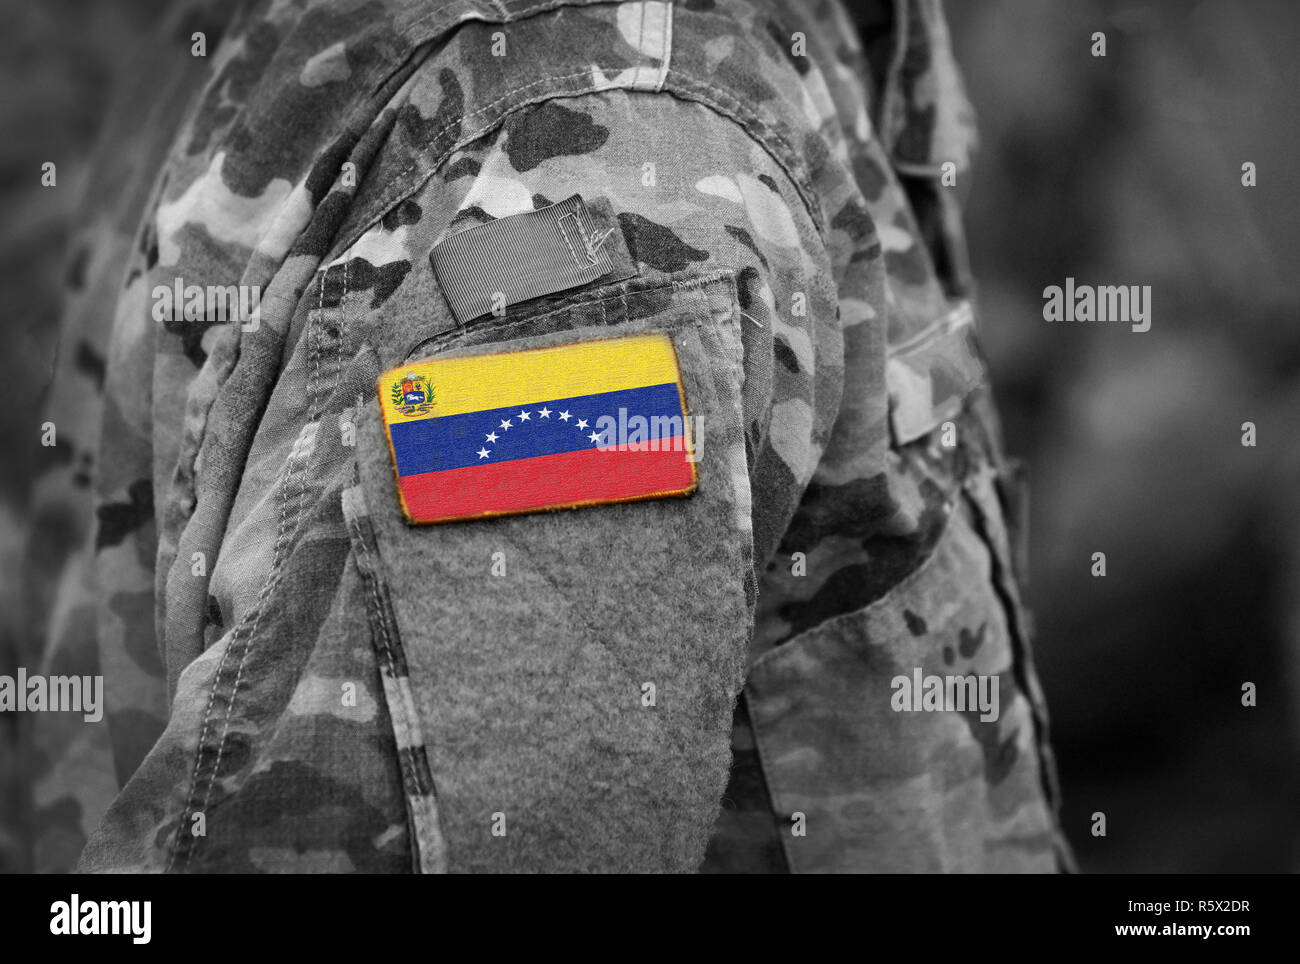 Flag of Venezuela on soldiers arm (collage). - Stock Image